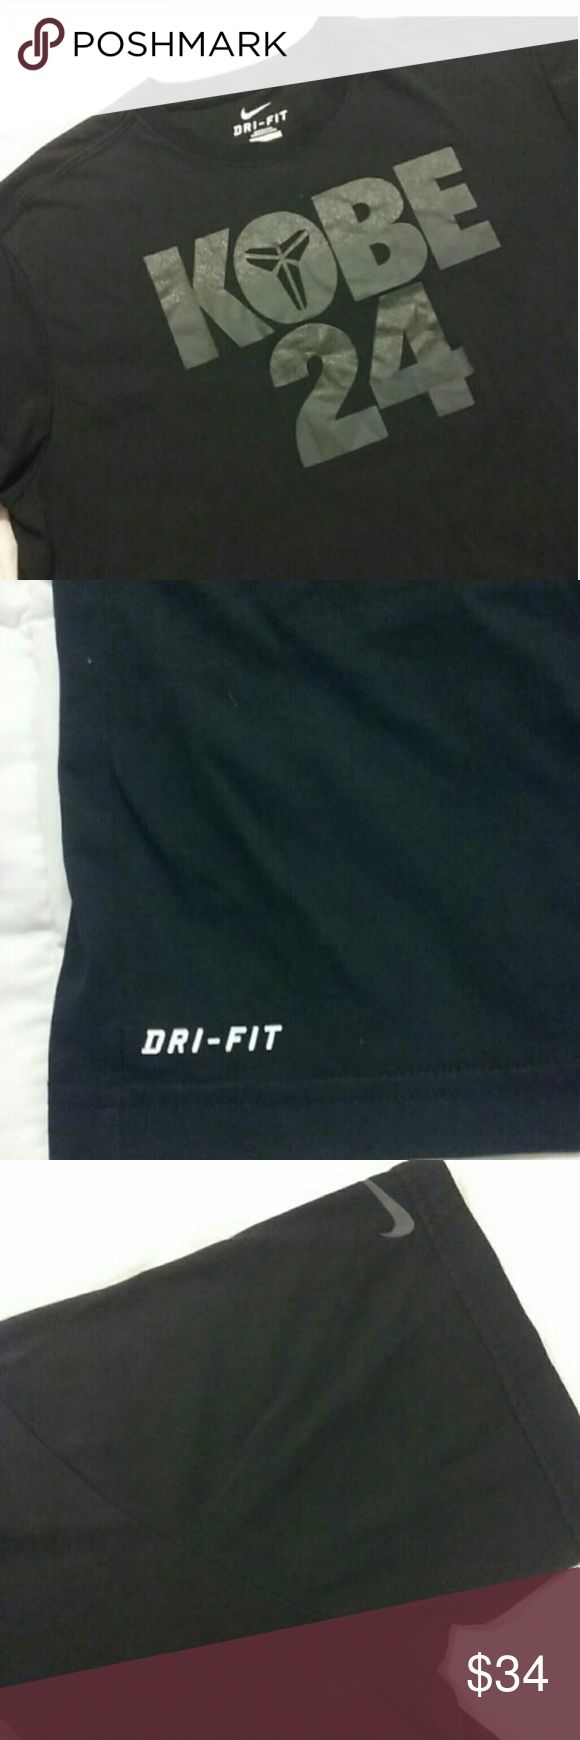 Nike DriFit Kobe shirt #24 black XL Brand new worn once and too big for my husband Size XL Nike drifit shirt Designed to keep you cool and dry during workouts. Great for long days at the gym, everyday wear or lounge clothes Black t-shirt Kobe 24 in grey lettering Drifit at bottom left side Nike Shirts Tees - Short Sleeve